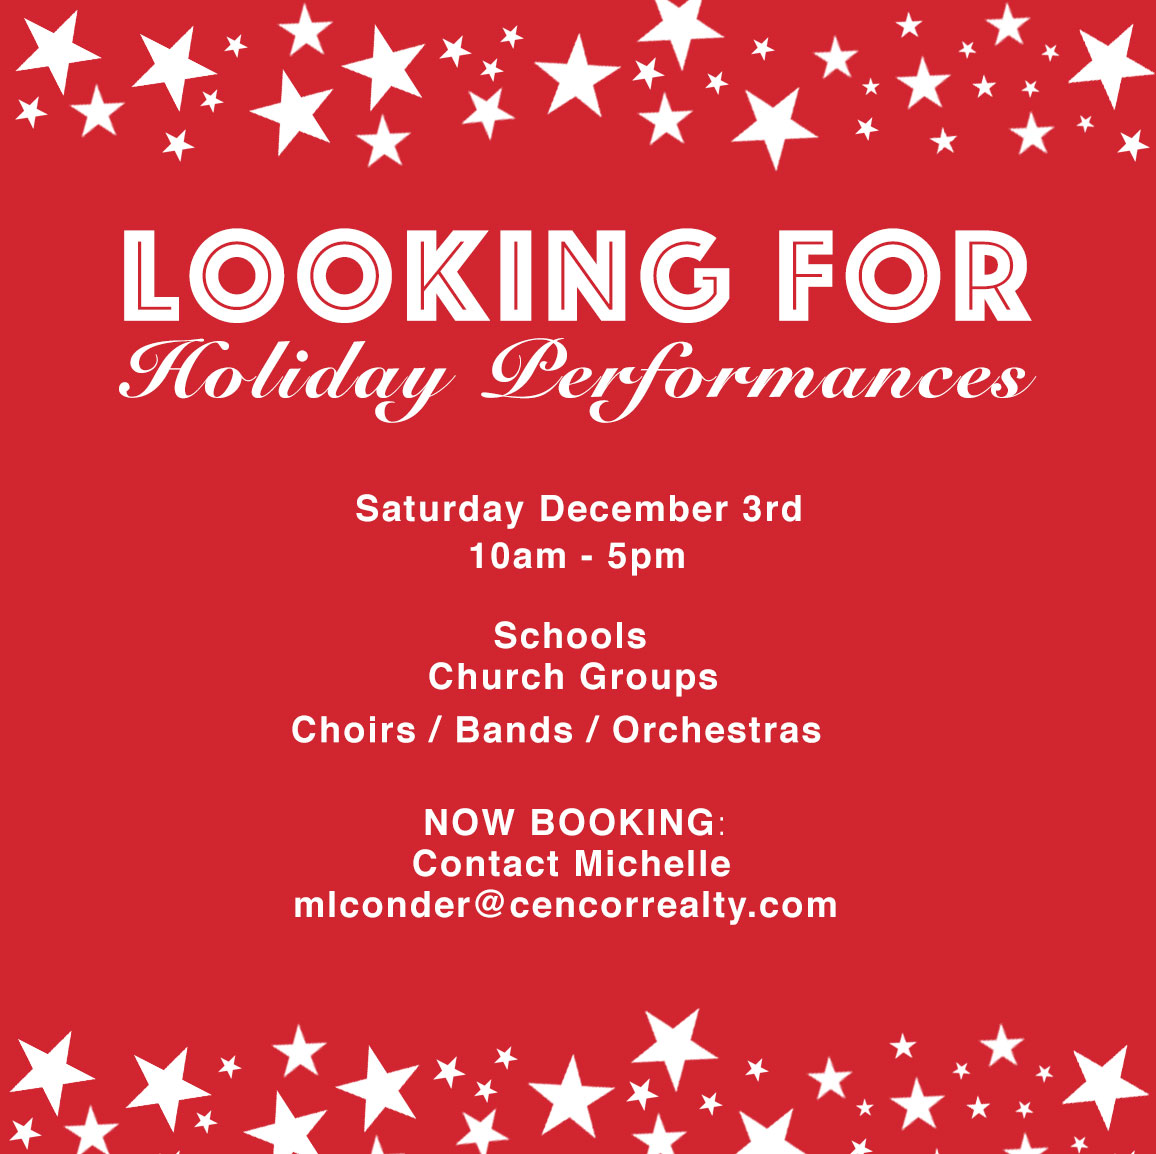 Dominion Ridge Holiday Performances Reminder